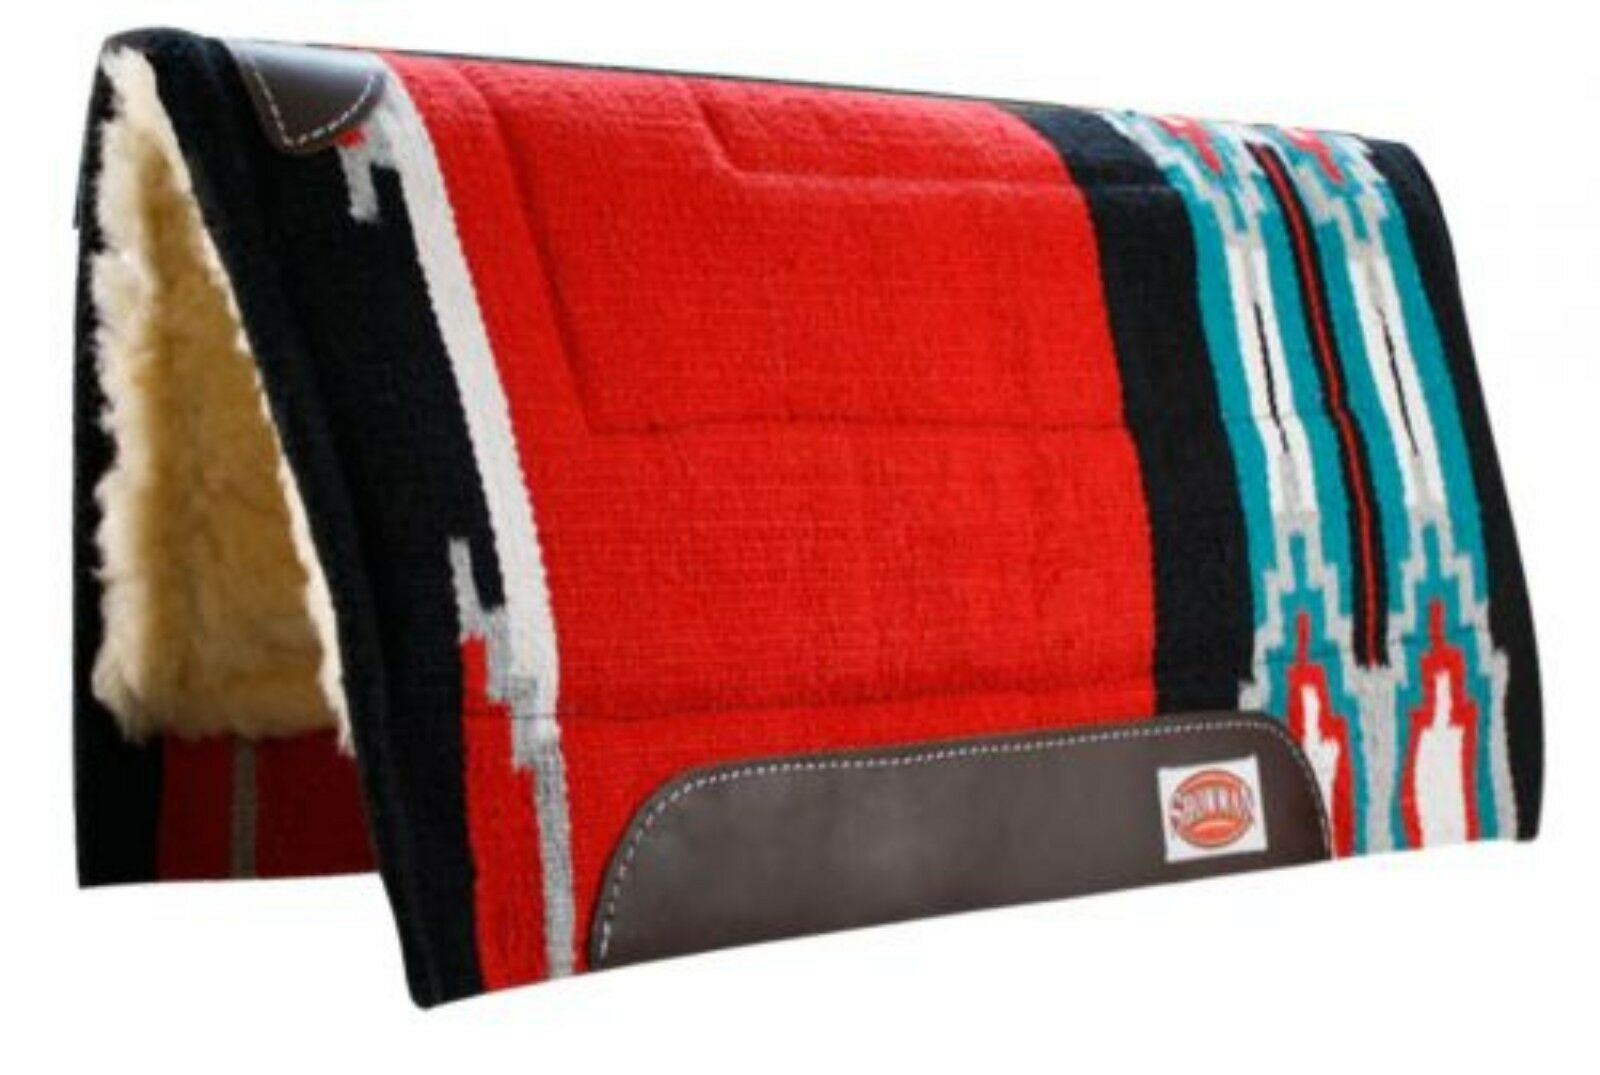 Showman rosso Dimensione 32x34 Cutter Style Pad with Kodel Fleece and Wear Leathers